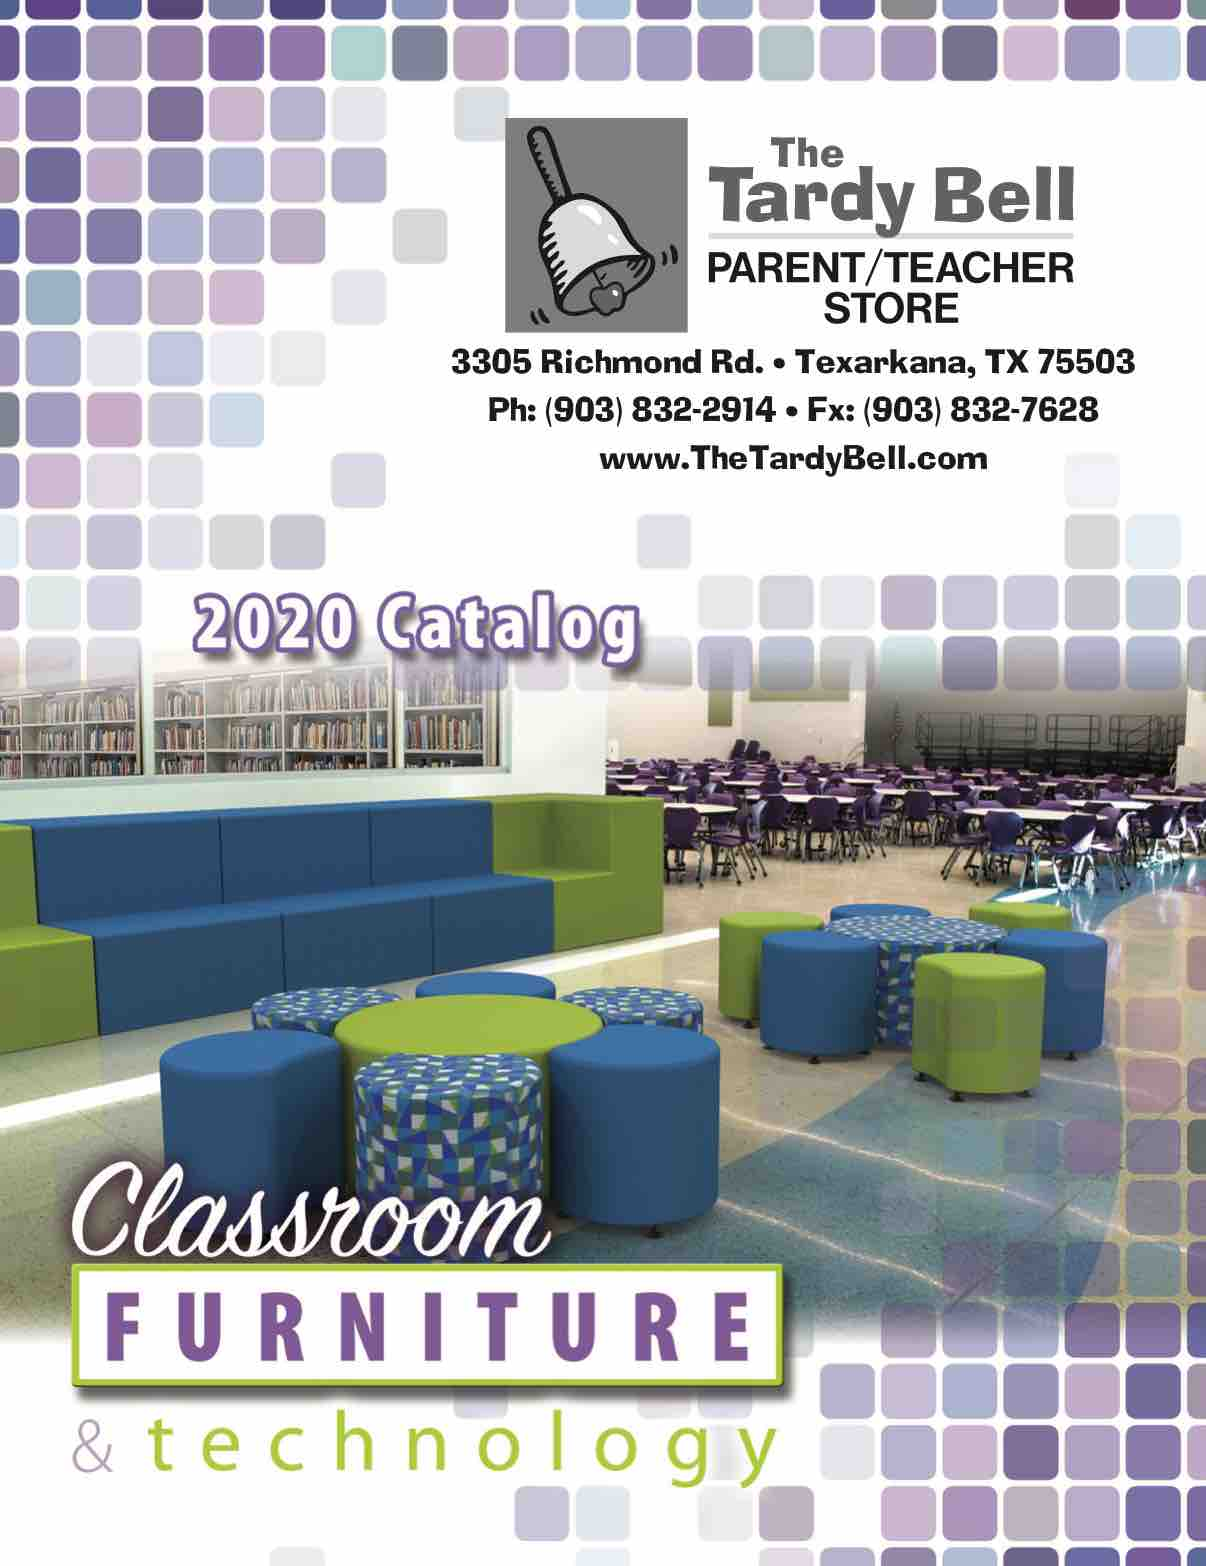 2020 Classroom Furniture Catalog